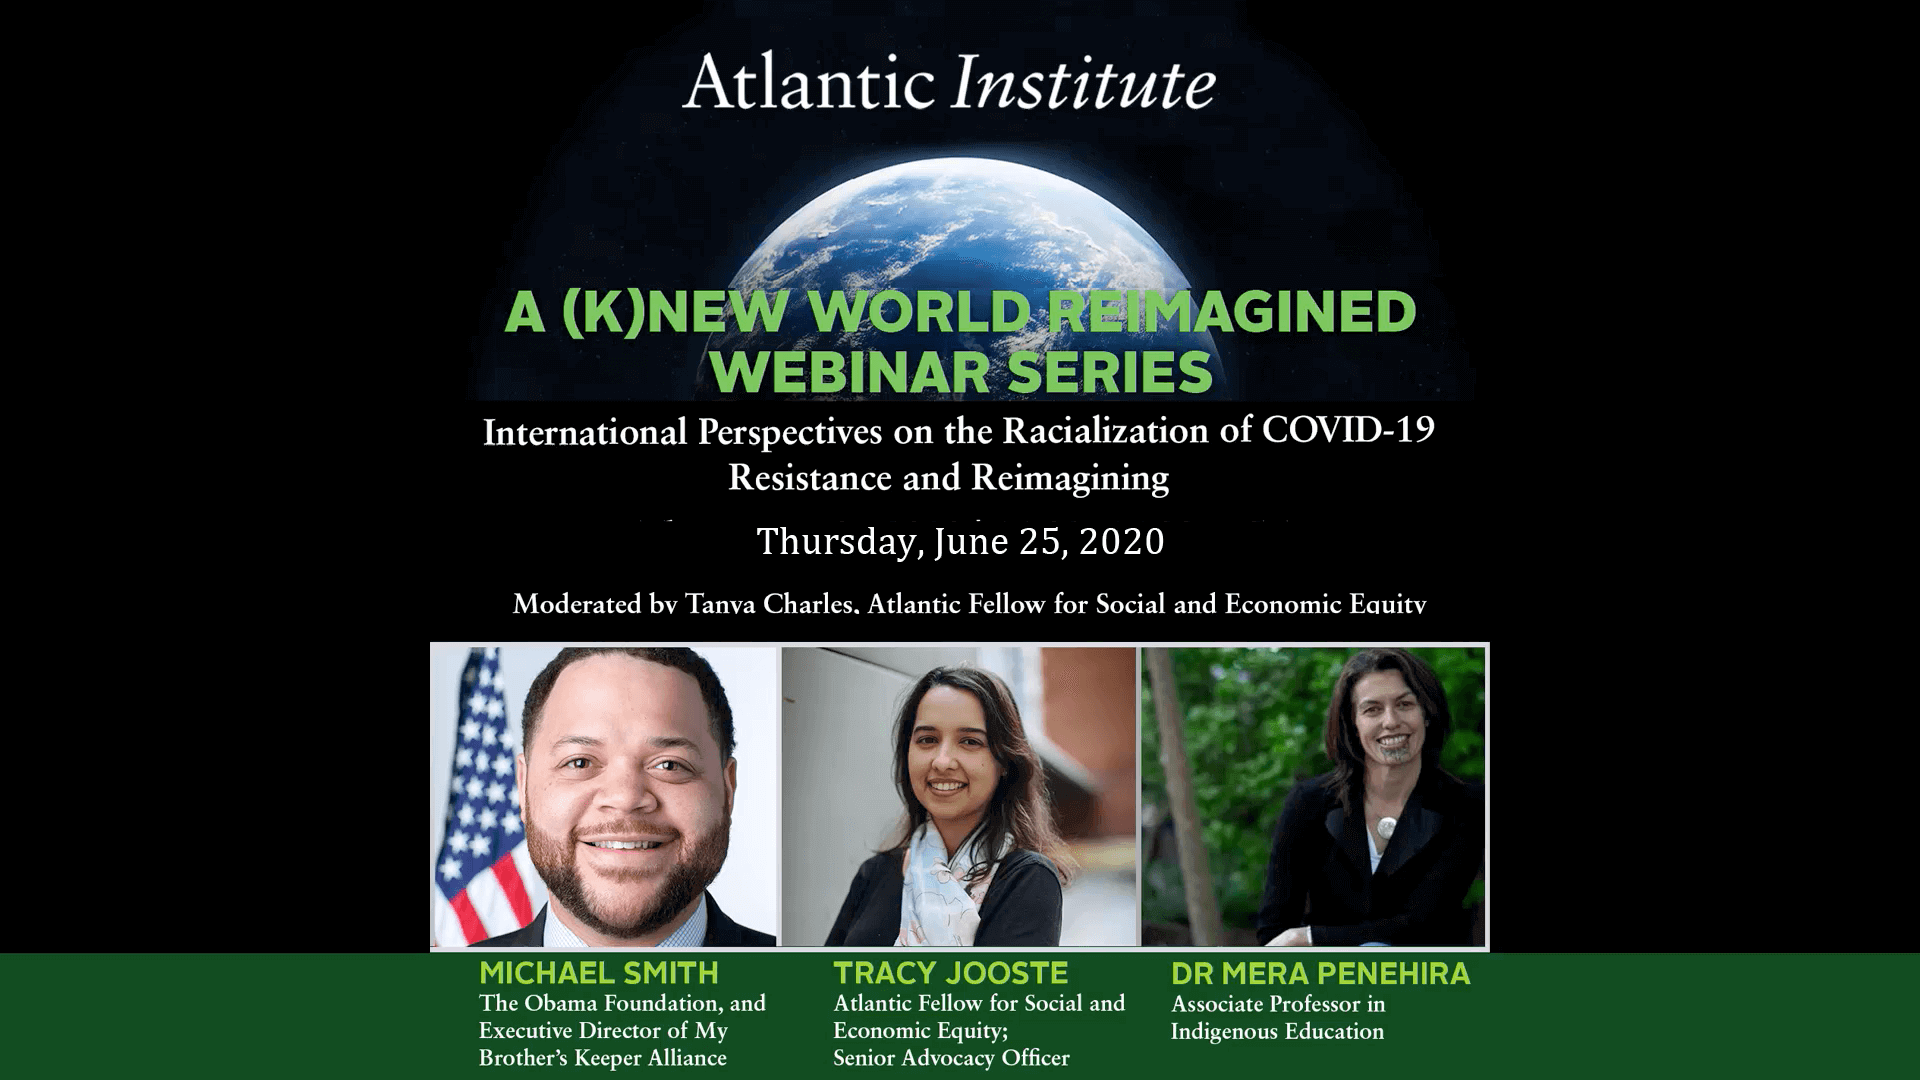 International Perspectives on the Racialization of COVID-19: Resistance and Reimagining: Webinar 2020